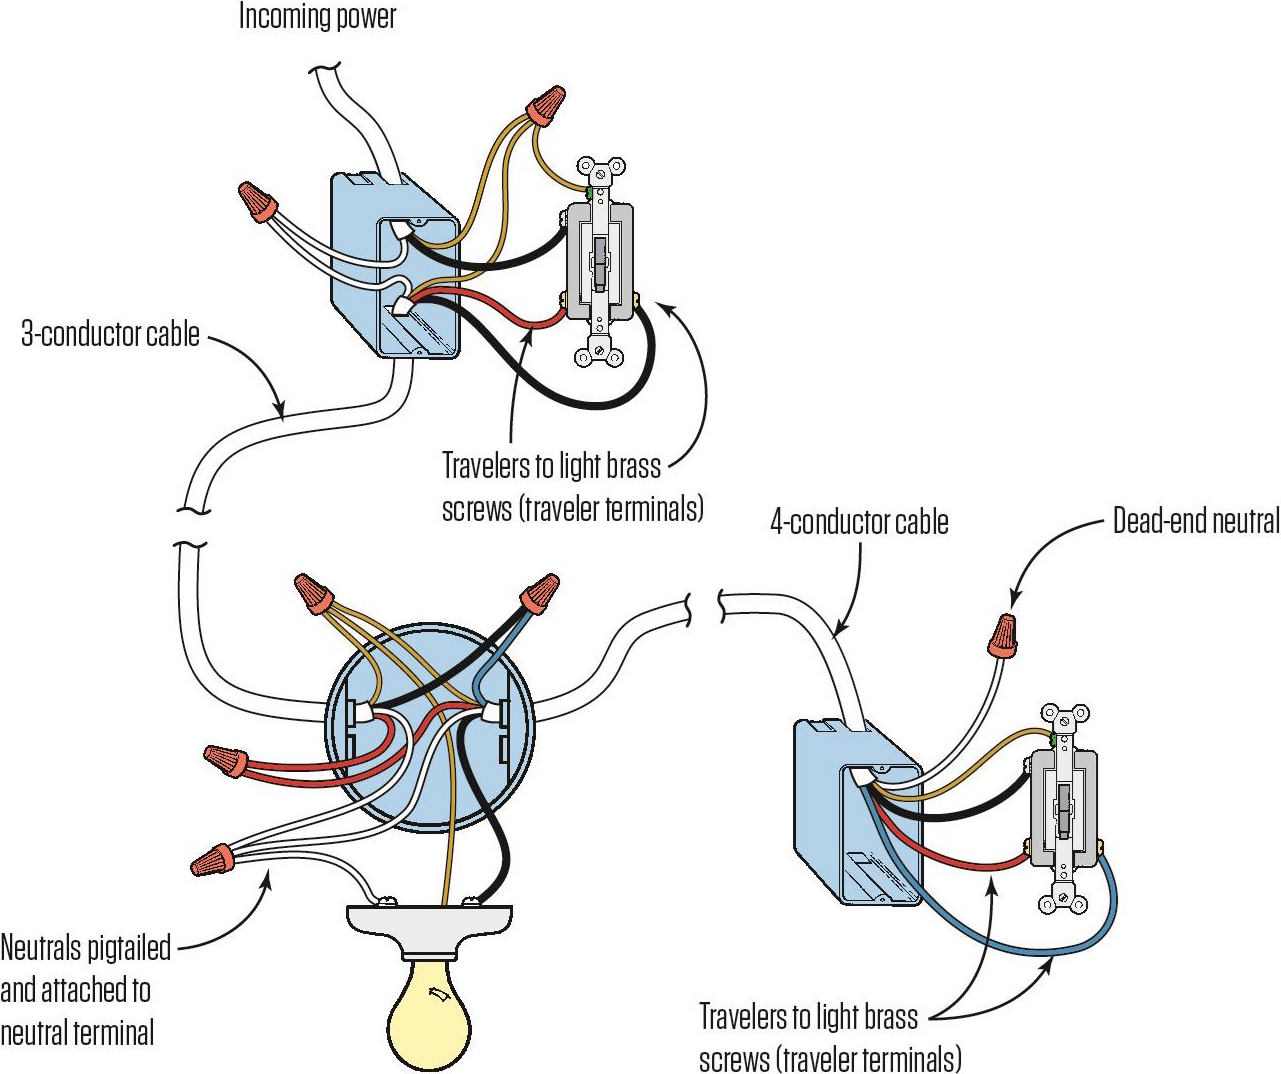 wiring a three-way switch | jlc online | electrical ... light to light wiring diagram plc to lvdt wiring diagram #9